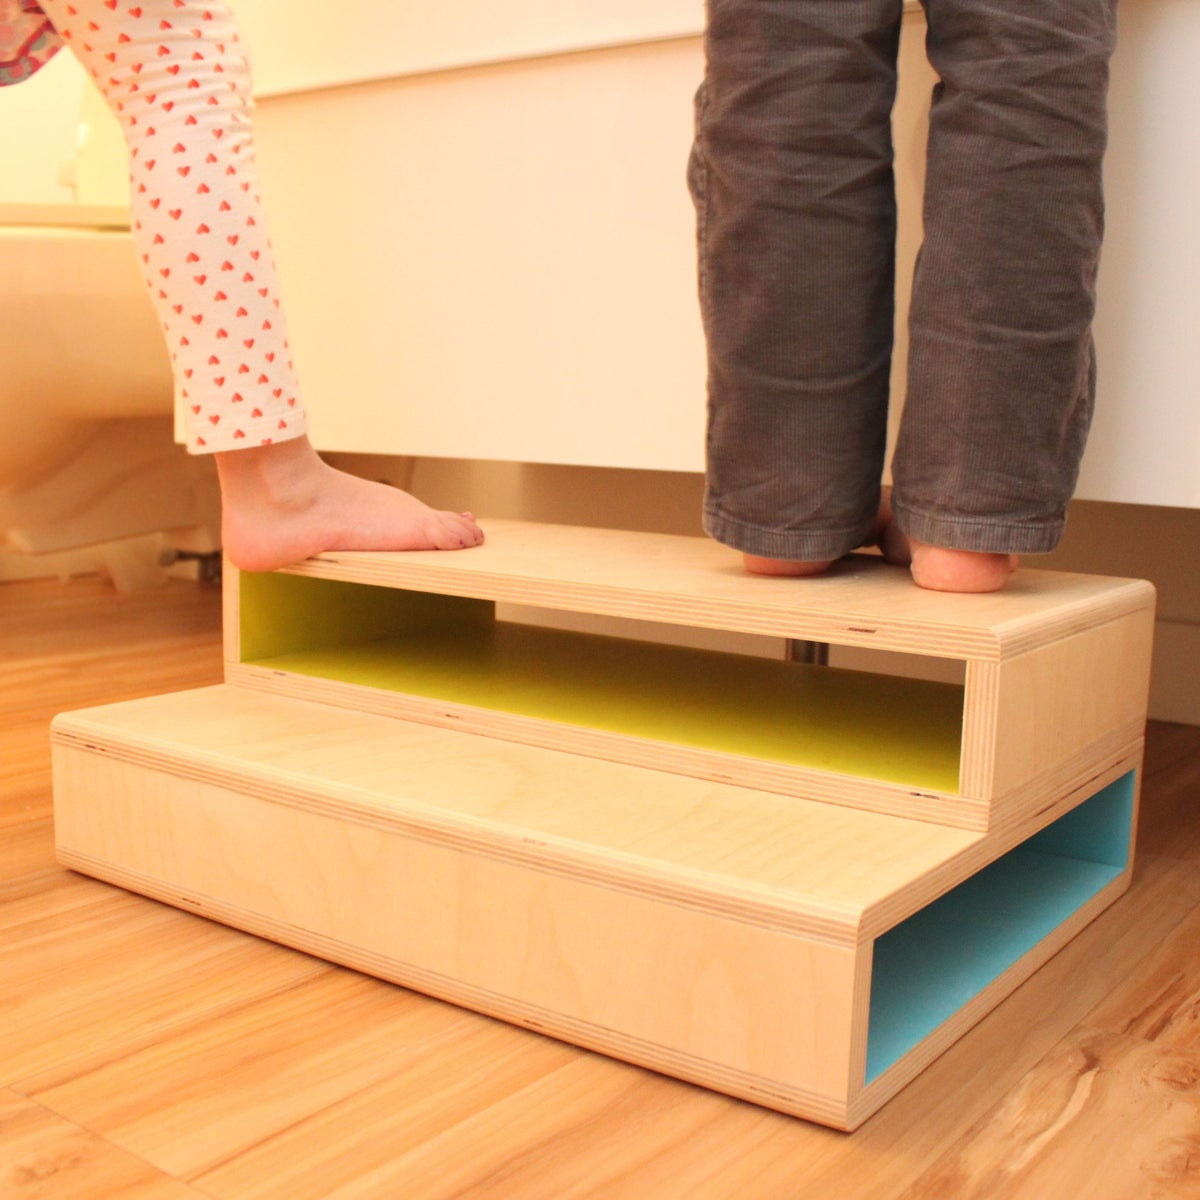 Image of StepUp II | Modern 2-Kid Step Stool | Blemished